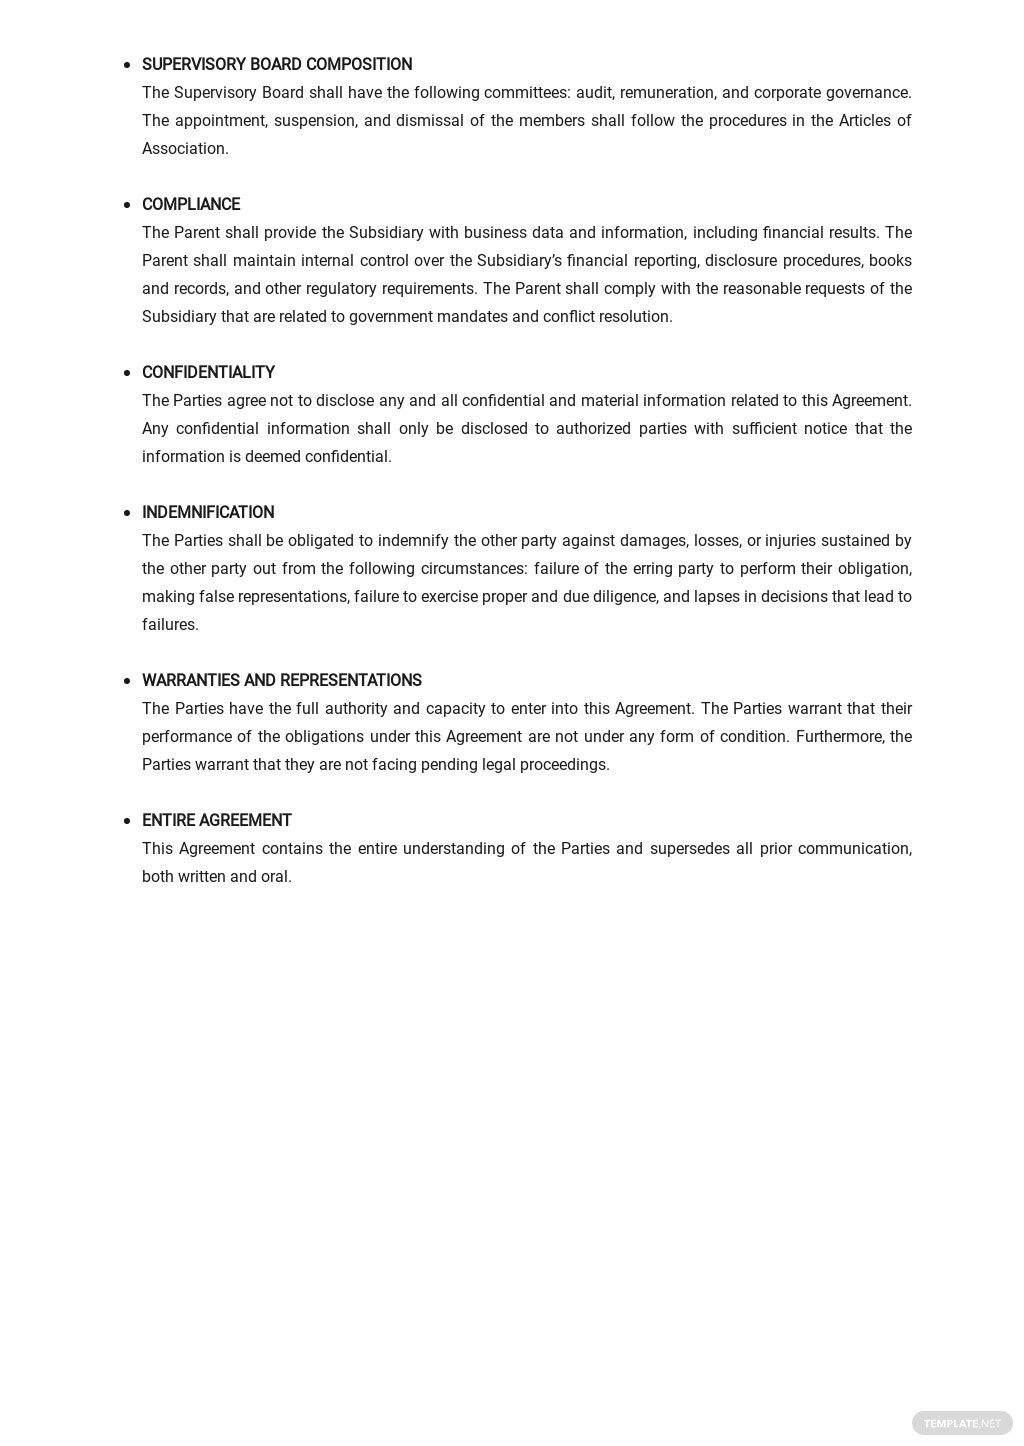 Relationship Contract Agreement Template  2.jpe